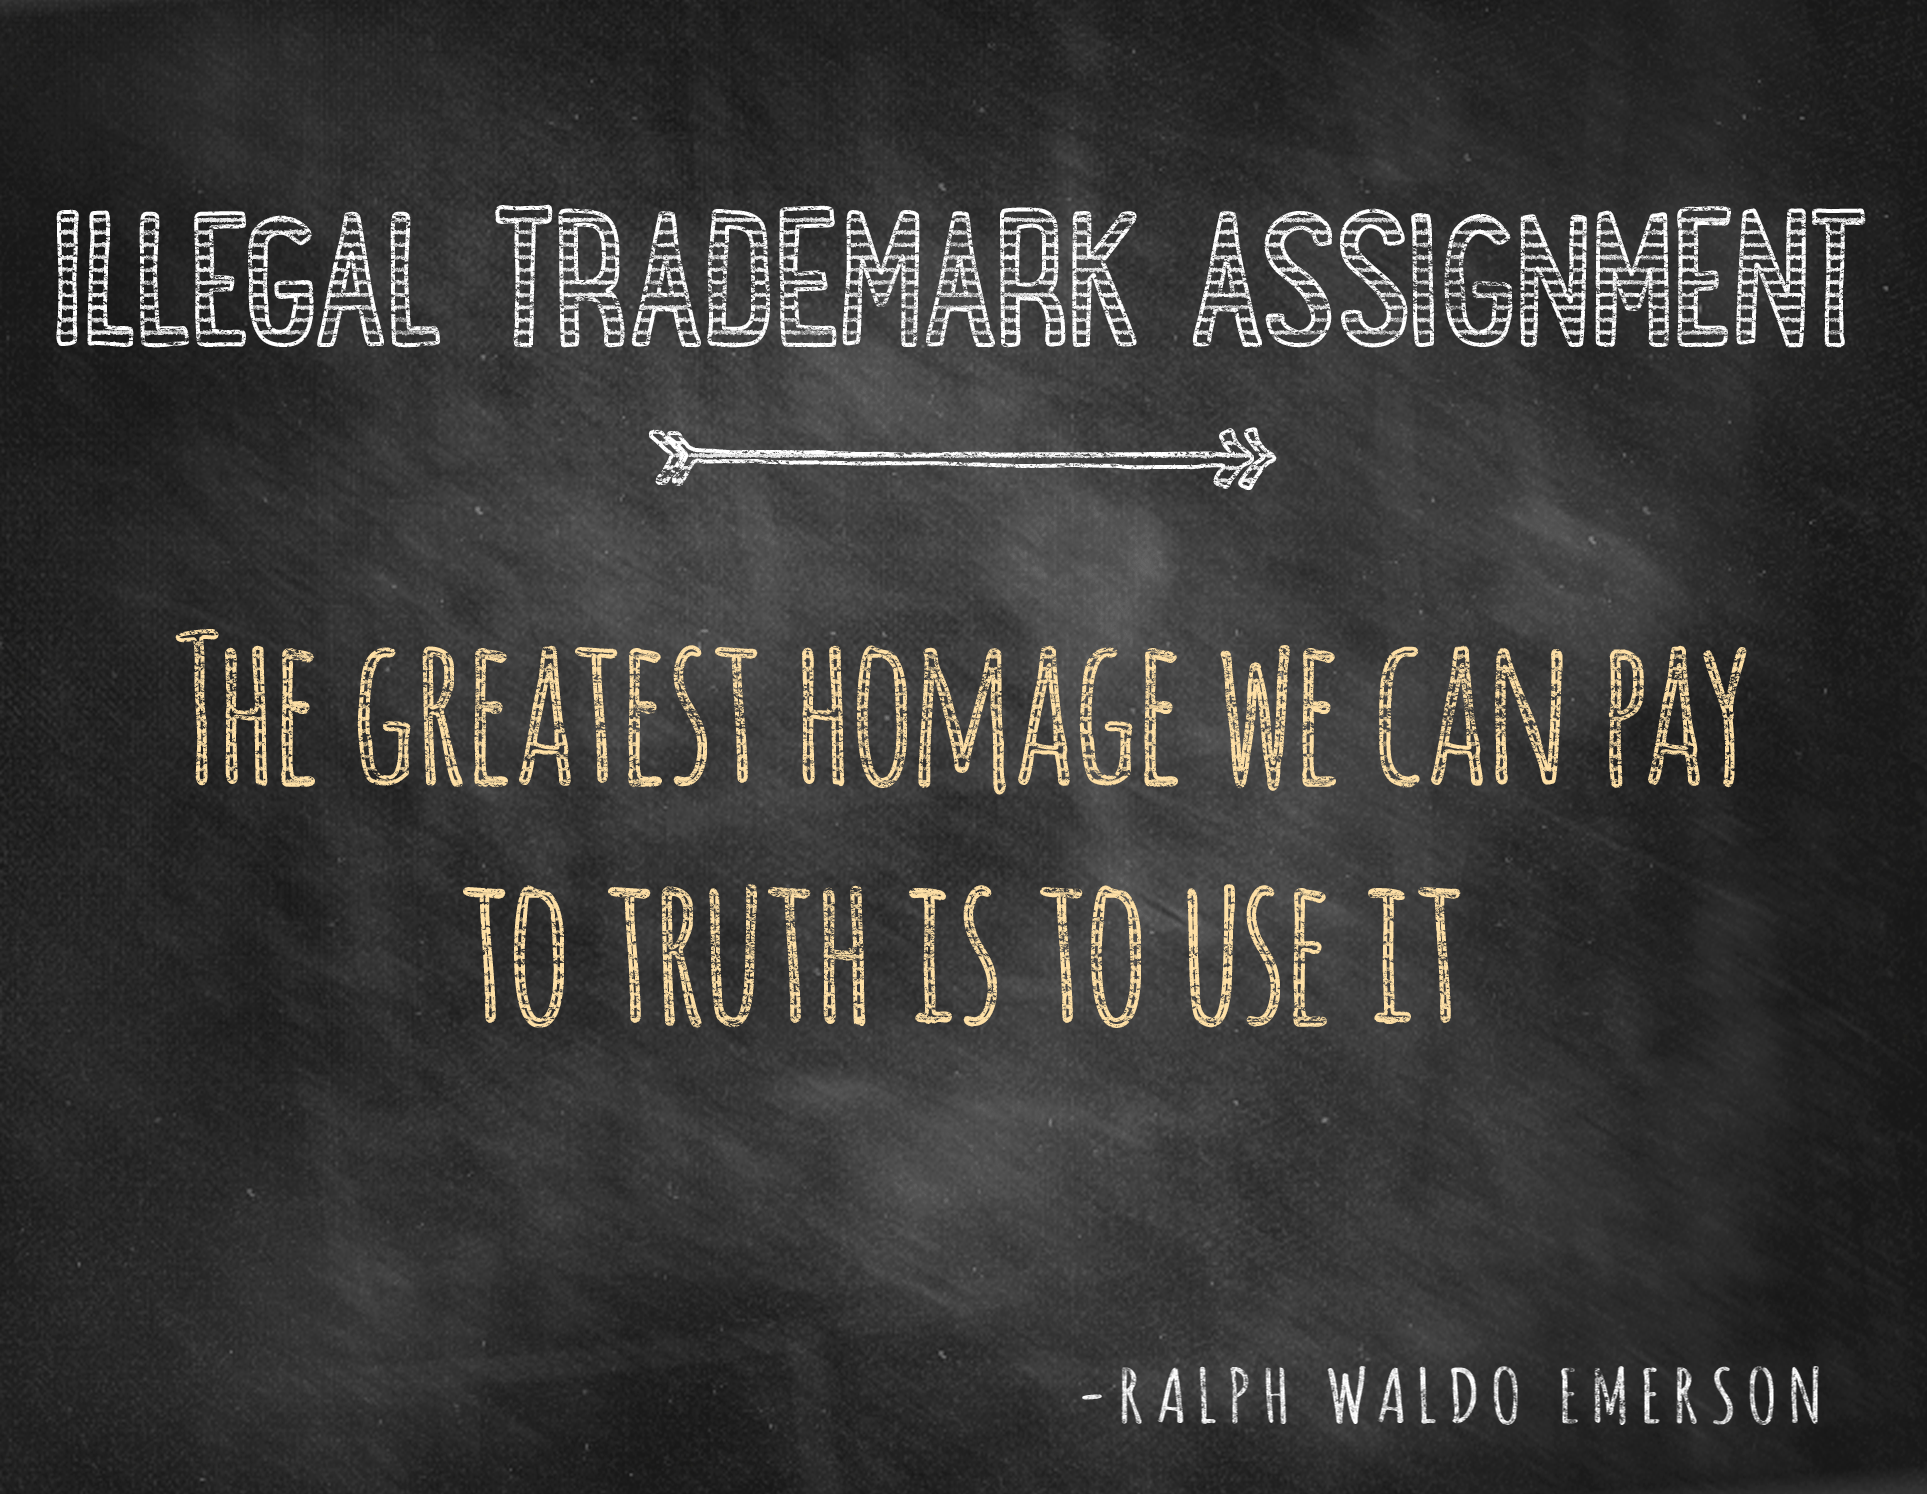 Avoiding Illegal Trademark Assignment